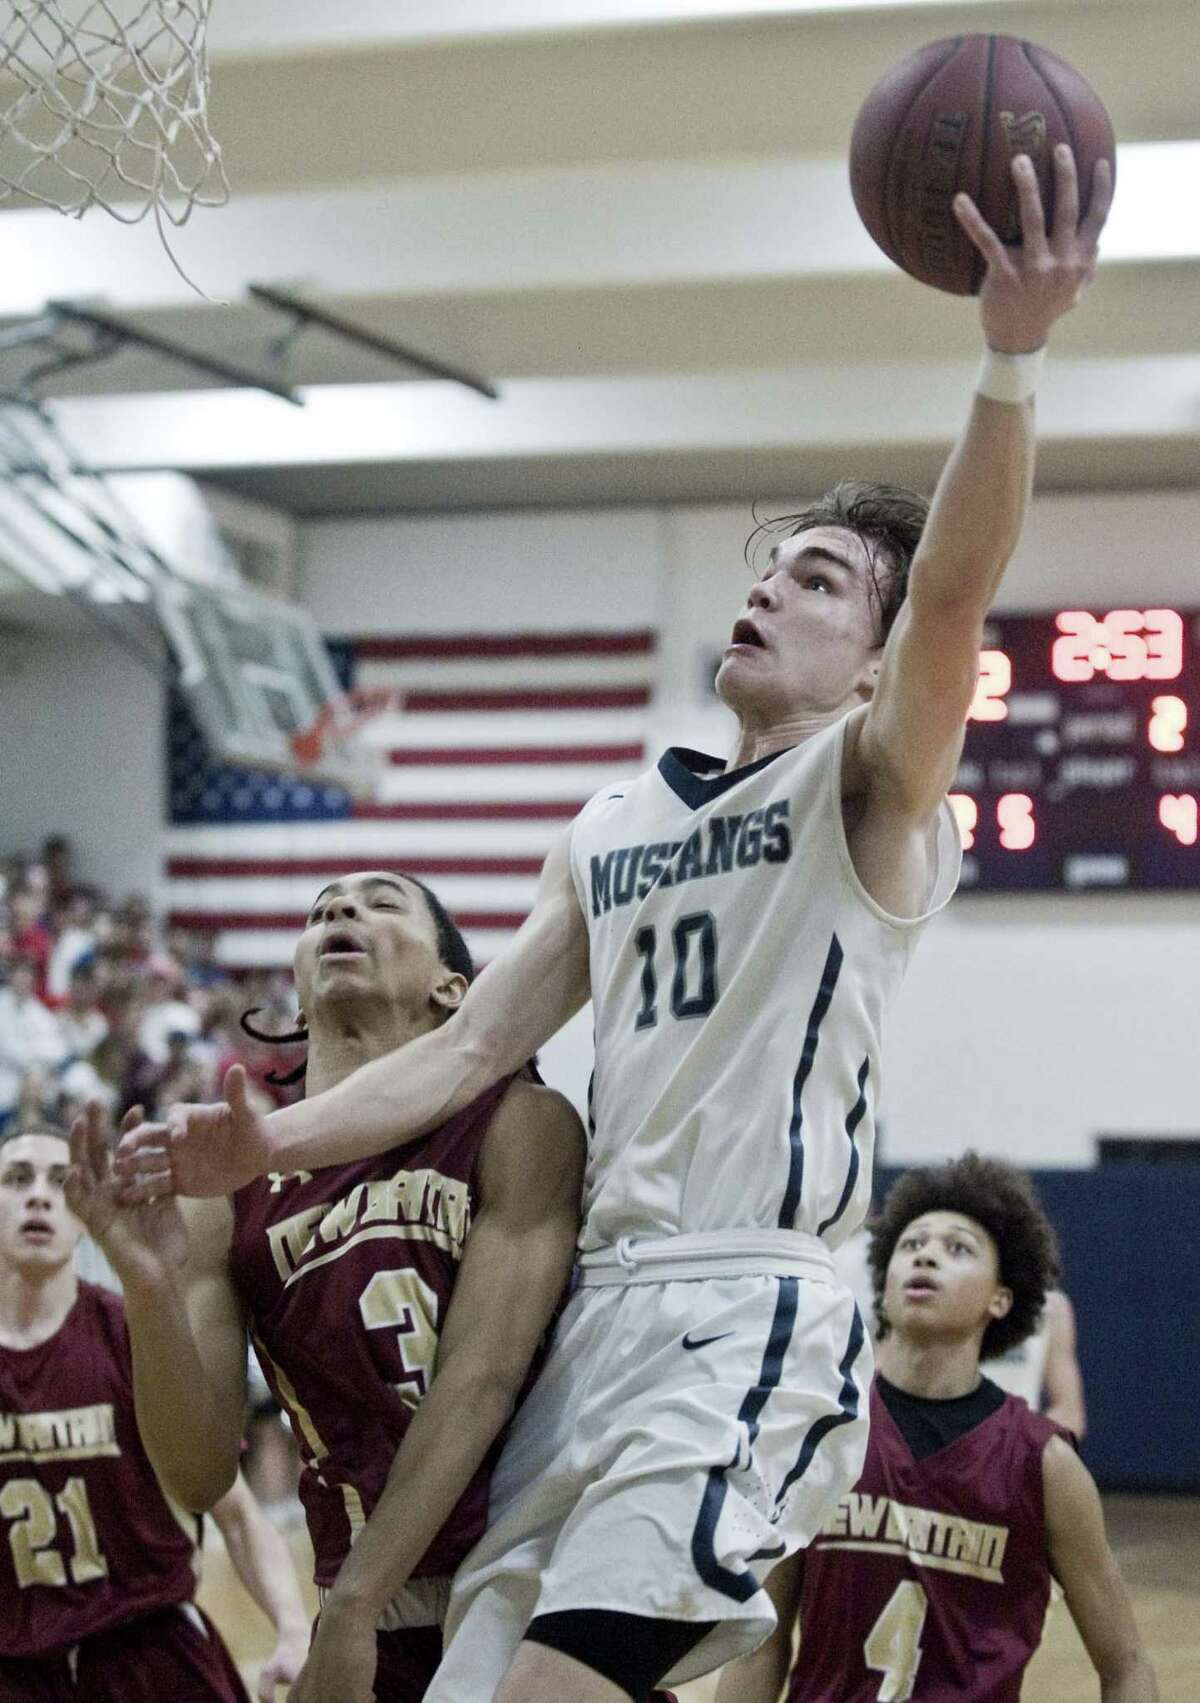 Immaculate High School's Quinn Guth rises for a shot in the Division II boys basketball quarterfinals against New Britain High School, played at Immaculate. Monday, March 12, 2018